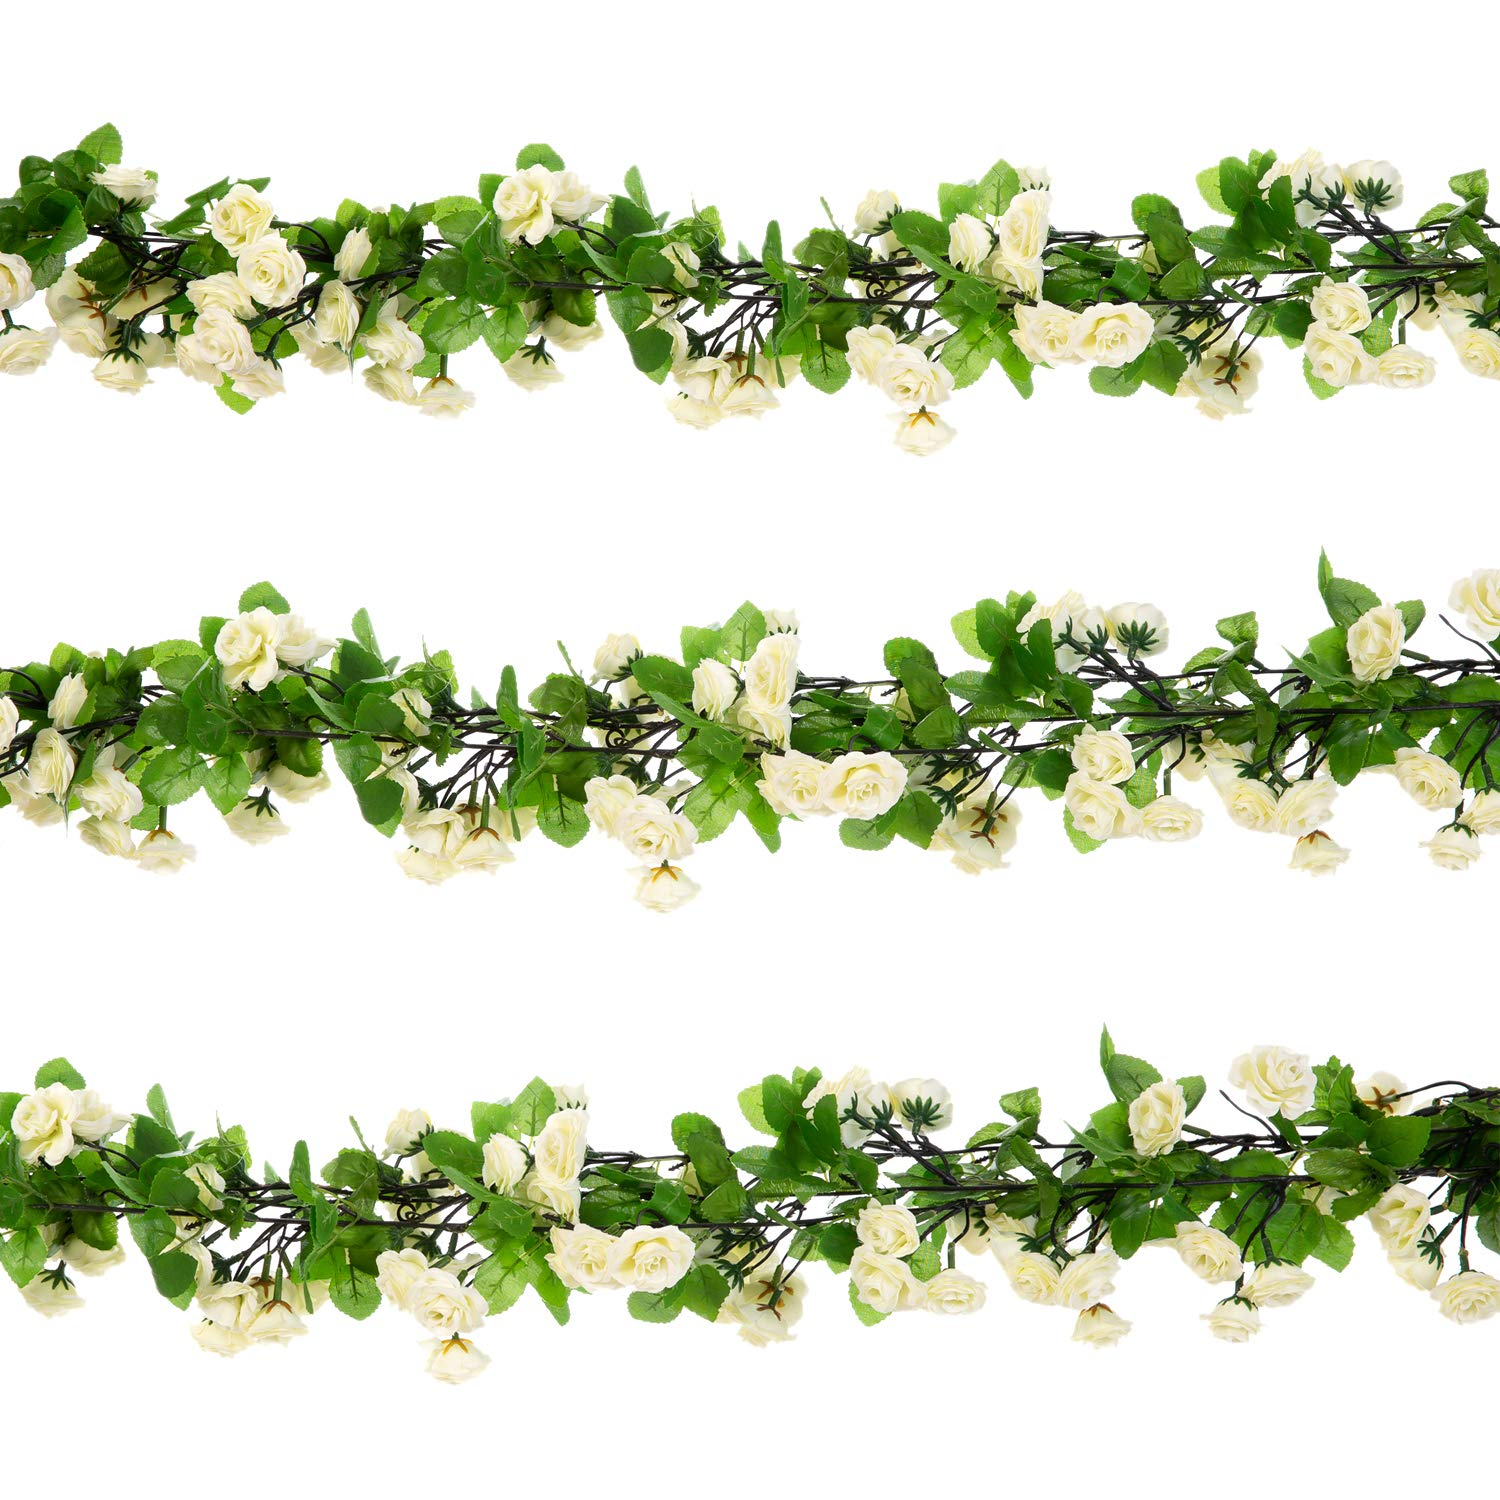 Rose Garland Artificial Rose Vine with Green Leaves 63 Inch Pack of 3 Flower Garland For Home Wedding Decor (champagne) [Energy Class A+++] LHC-1